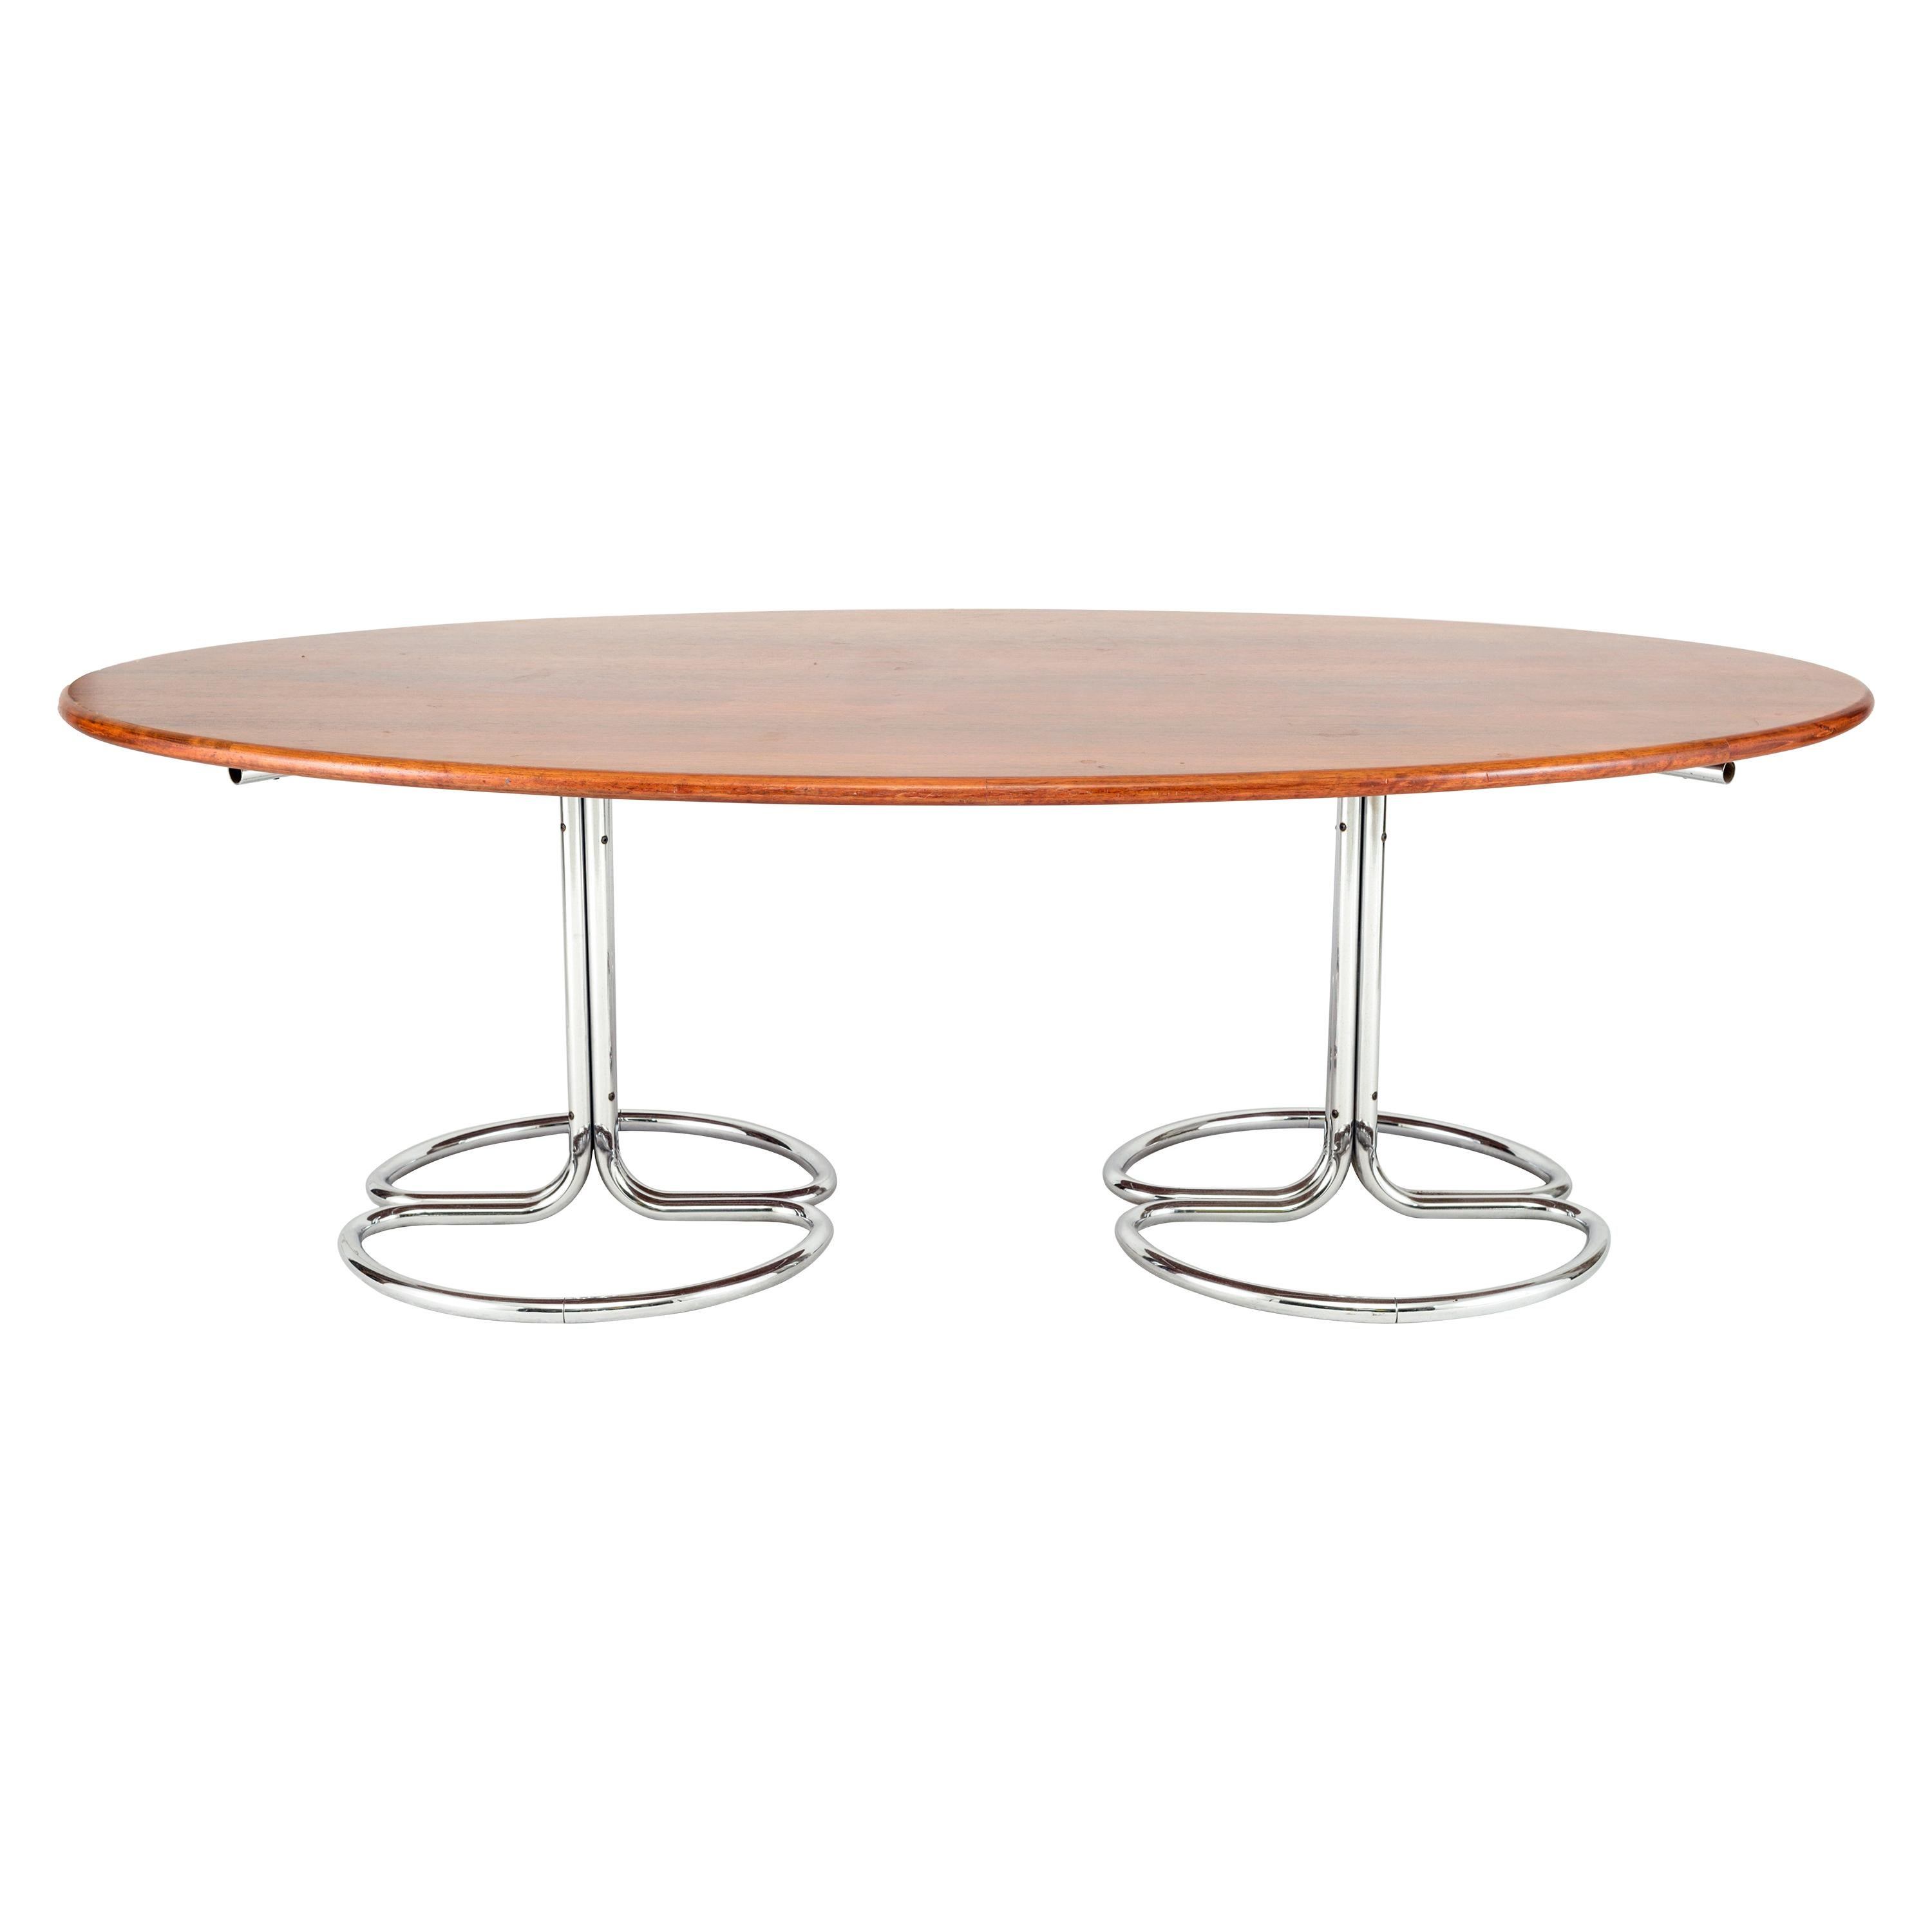 Dining Table by Giotto Stoppino for Bernini, Italy, Late 1960s